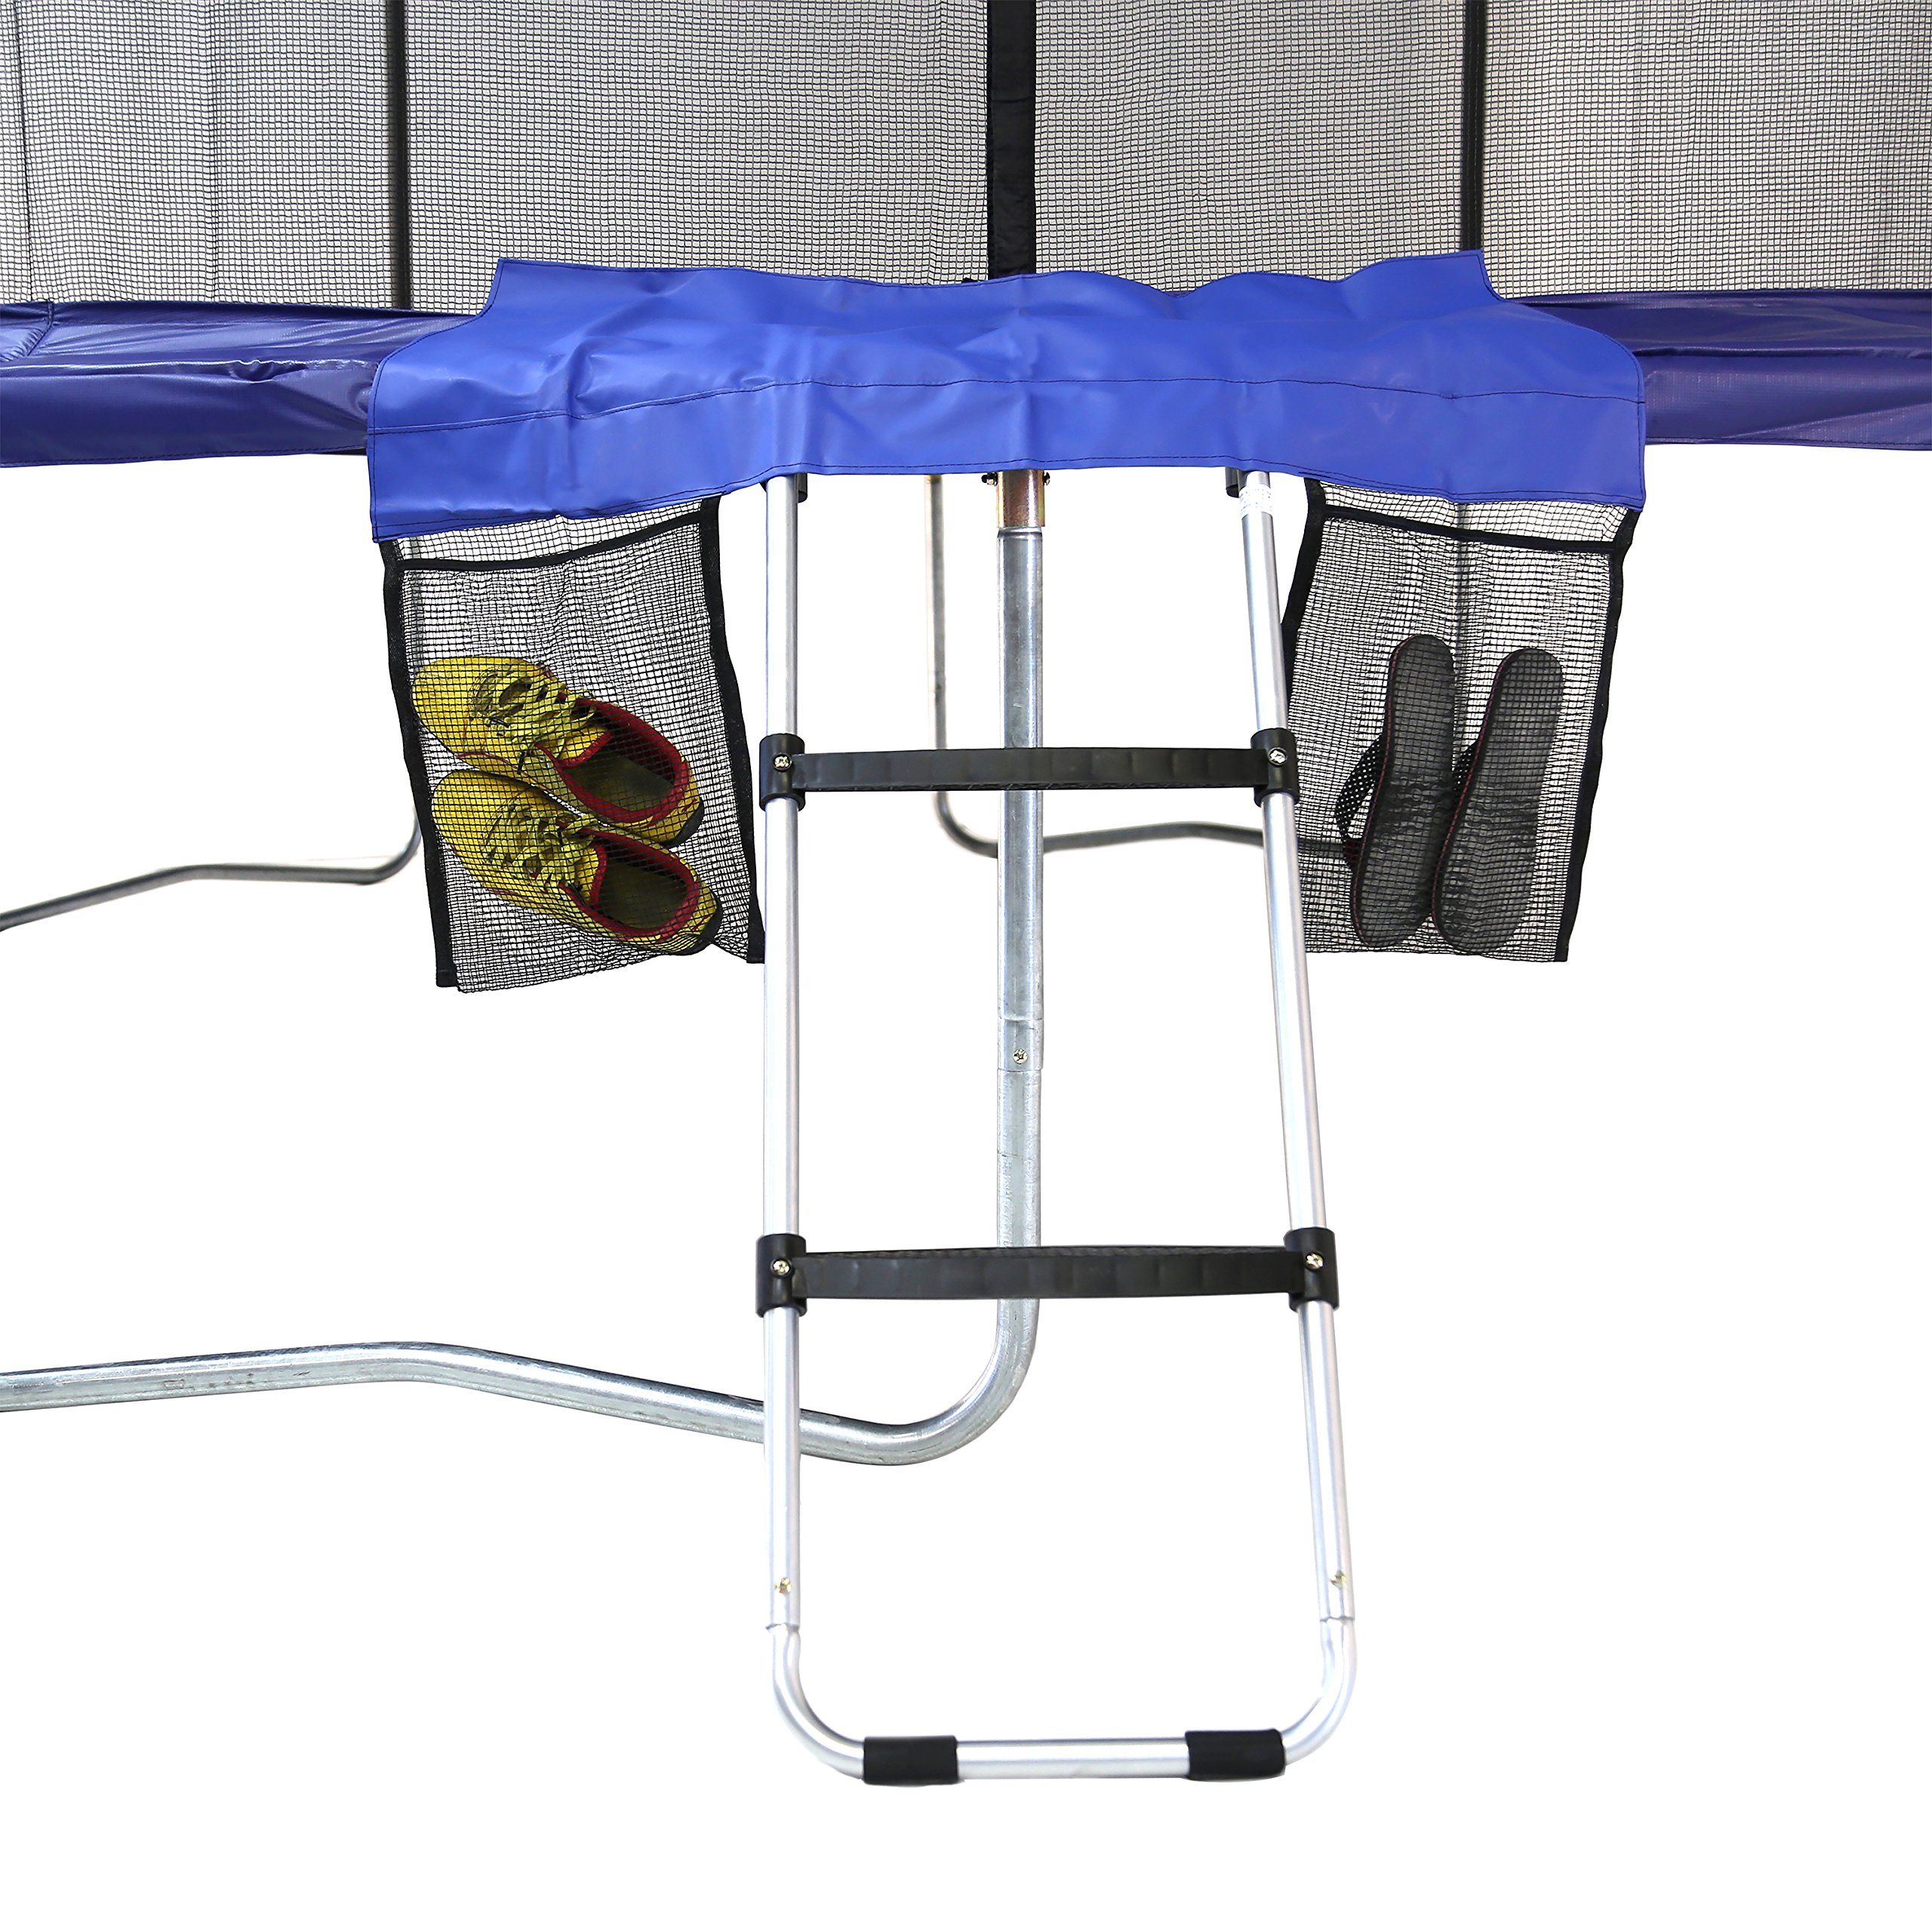 Skywalker Trampolines Wide-Step Ladder Accessory Kit, Blue by Skywalker Trampolines